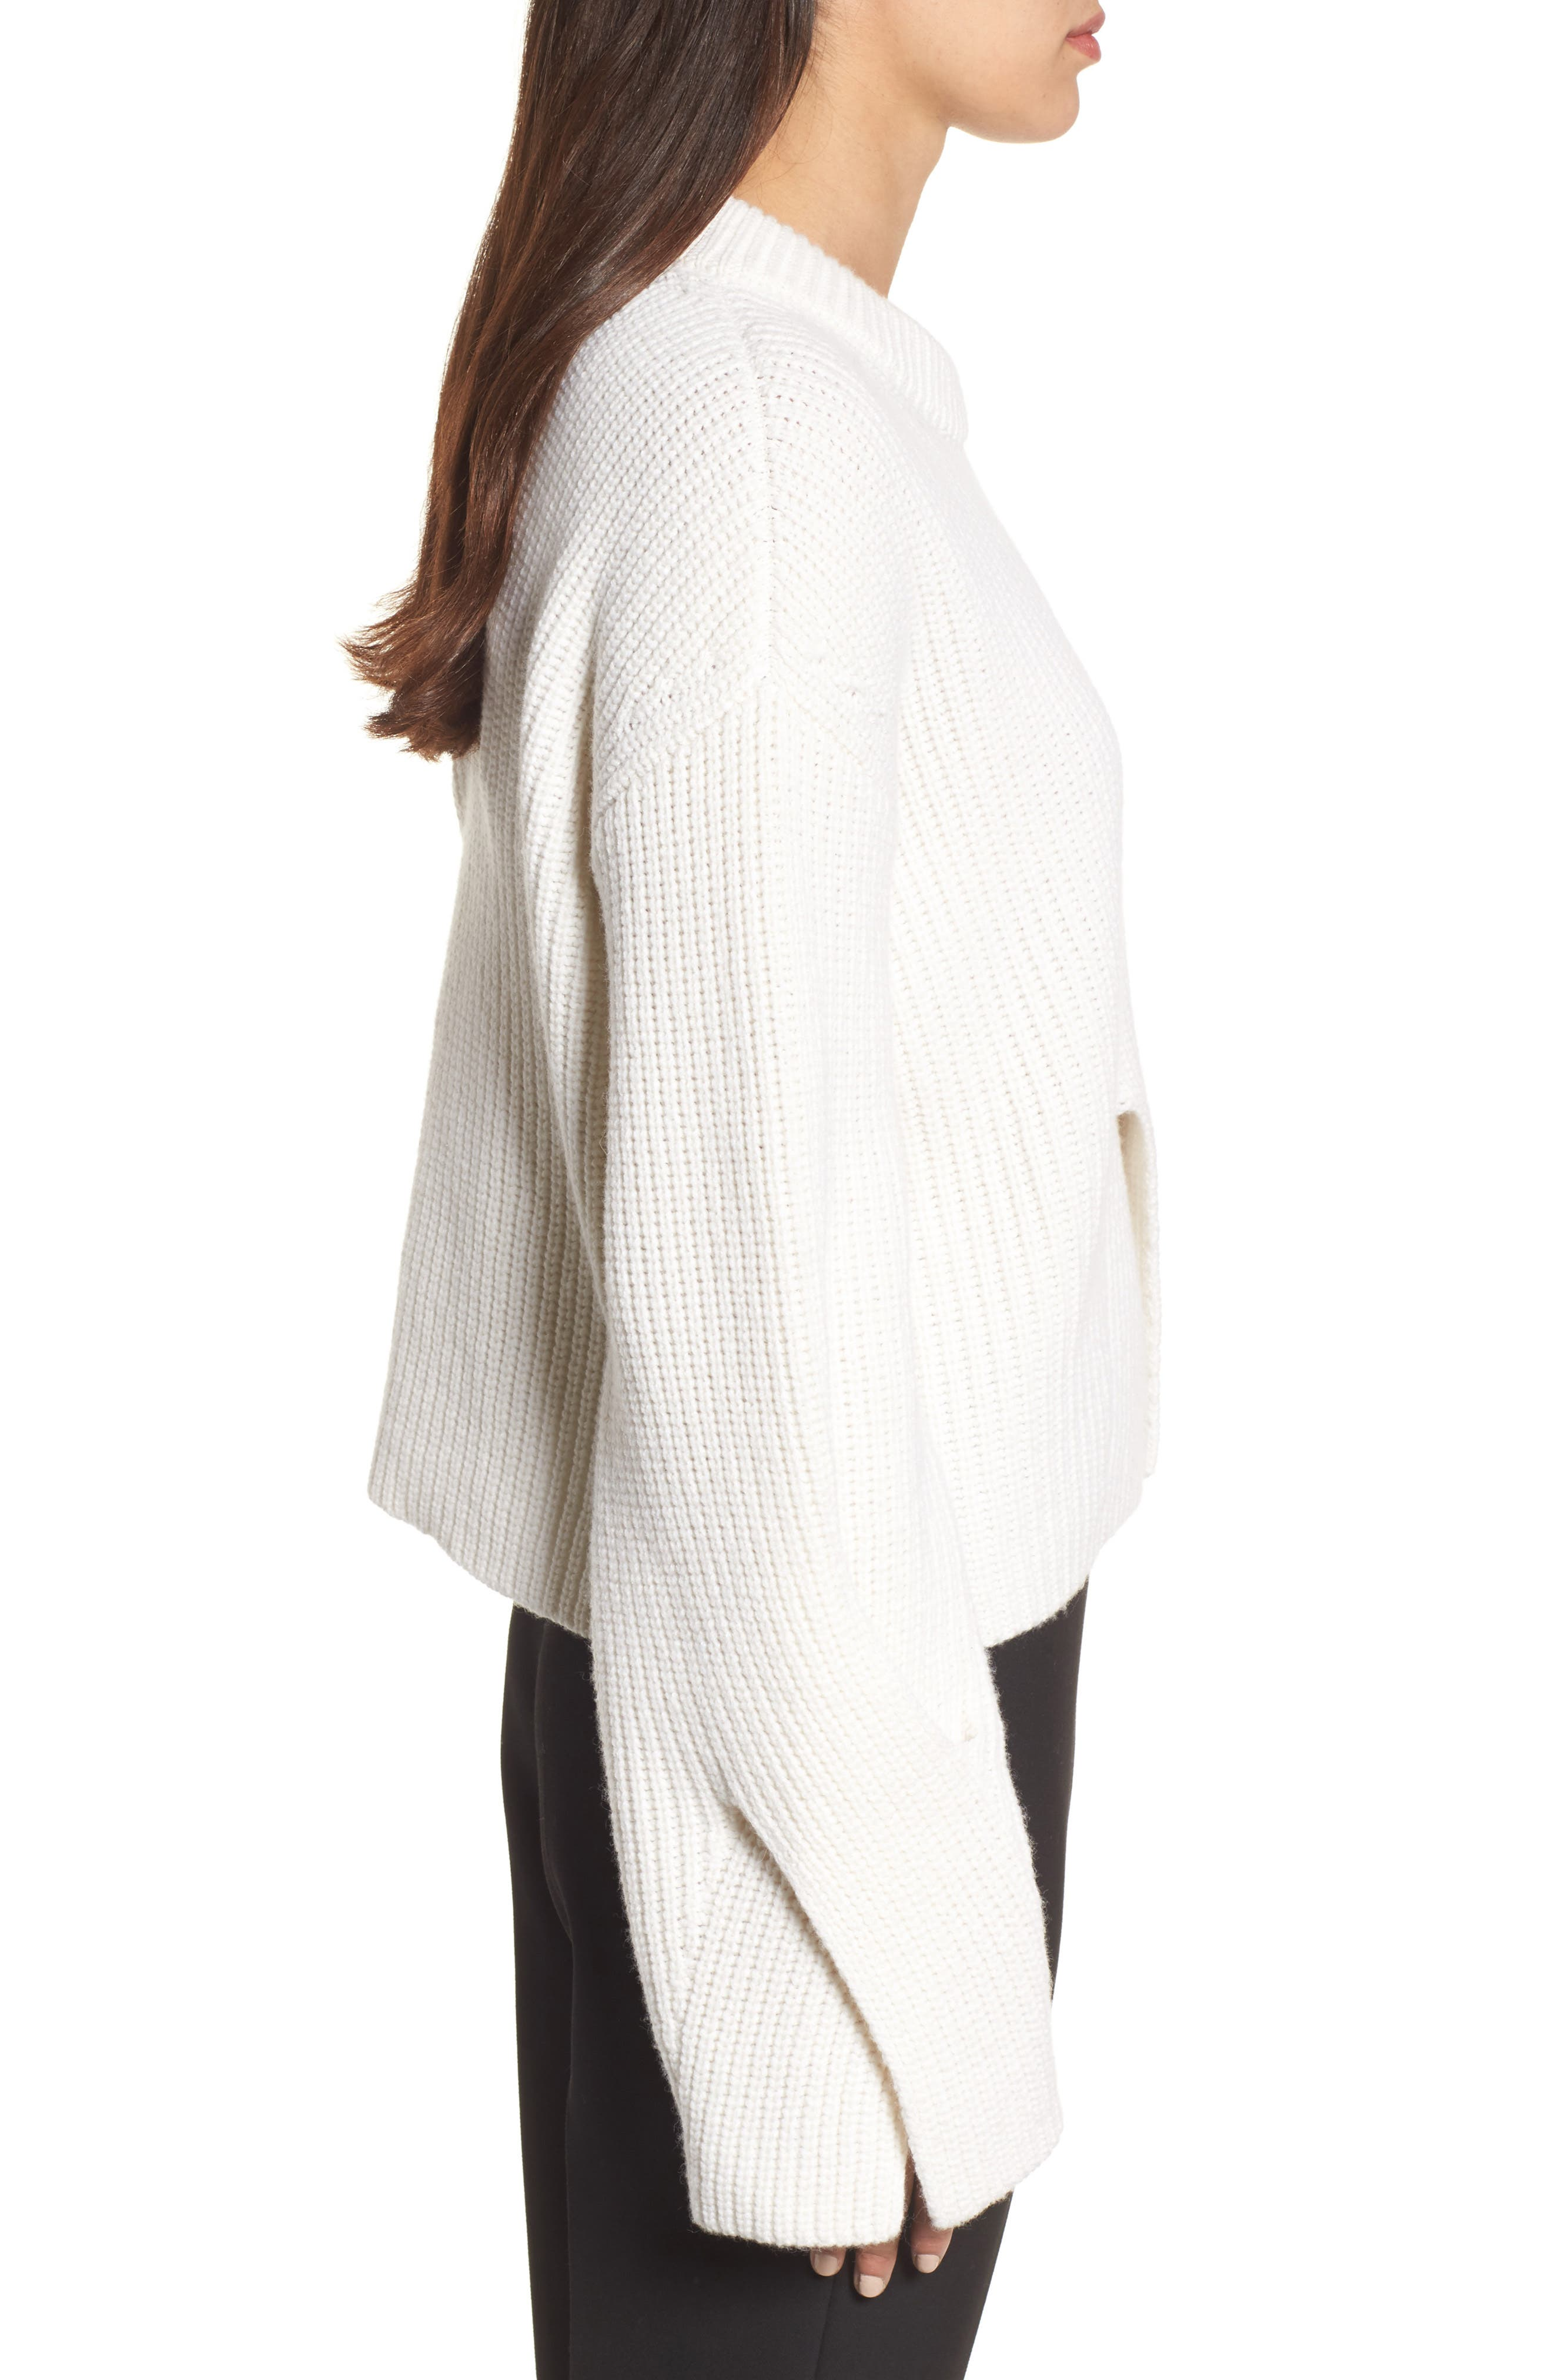 Fihra Wool Blend Sweater,                             Alternate thumbnail 3, color,                             252